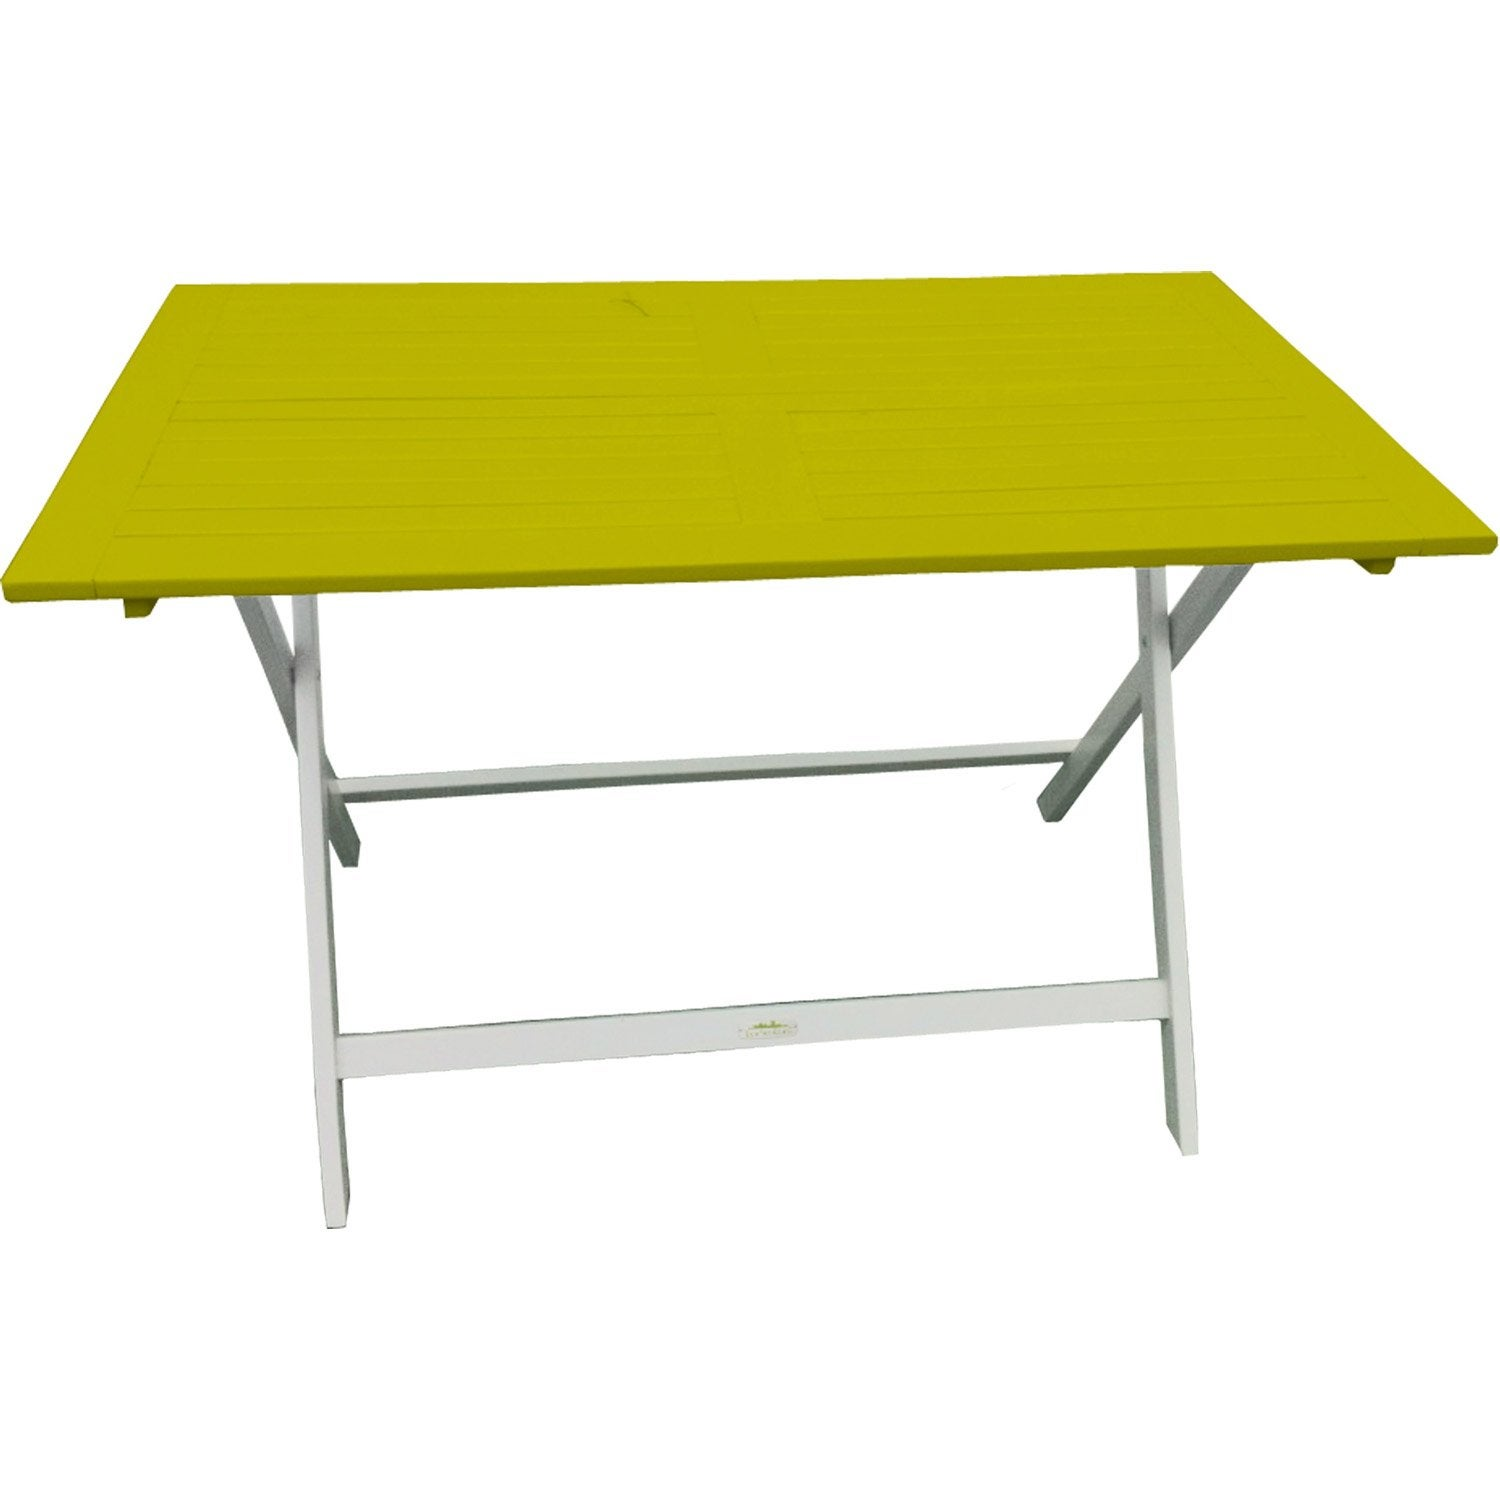 Table de jardin city green rectangulaire vert 4 personnes for Table de nuit leroy merlin